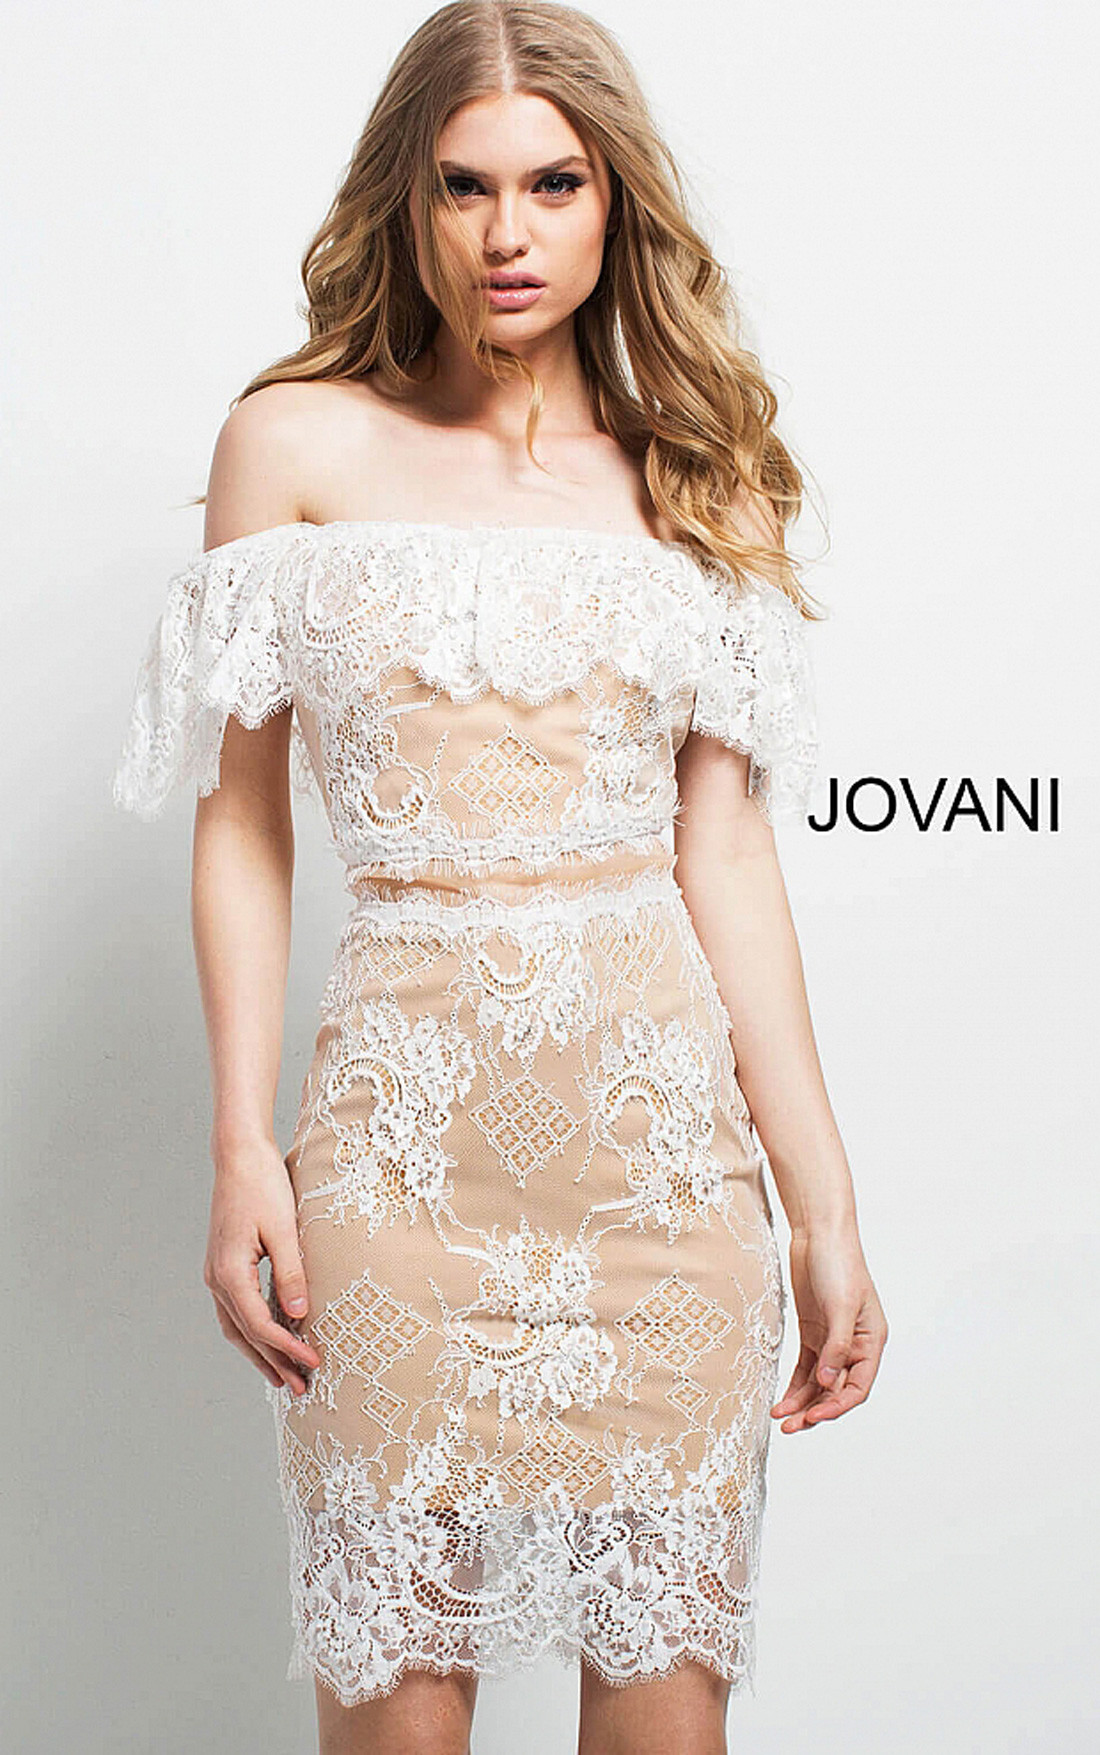 d3b8d3795d1 ... Jovani - White Fitted Off the Shoulder Lace Cocktail Dress (49816)